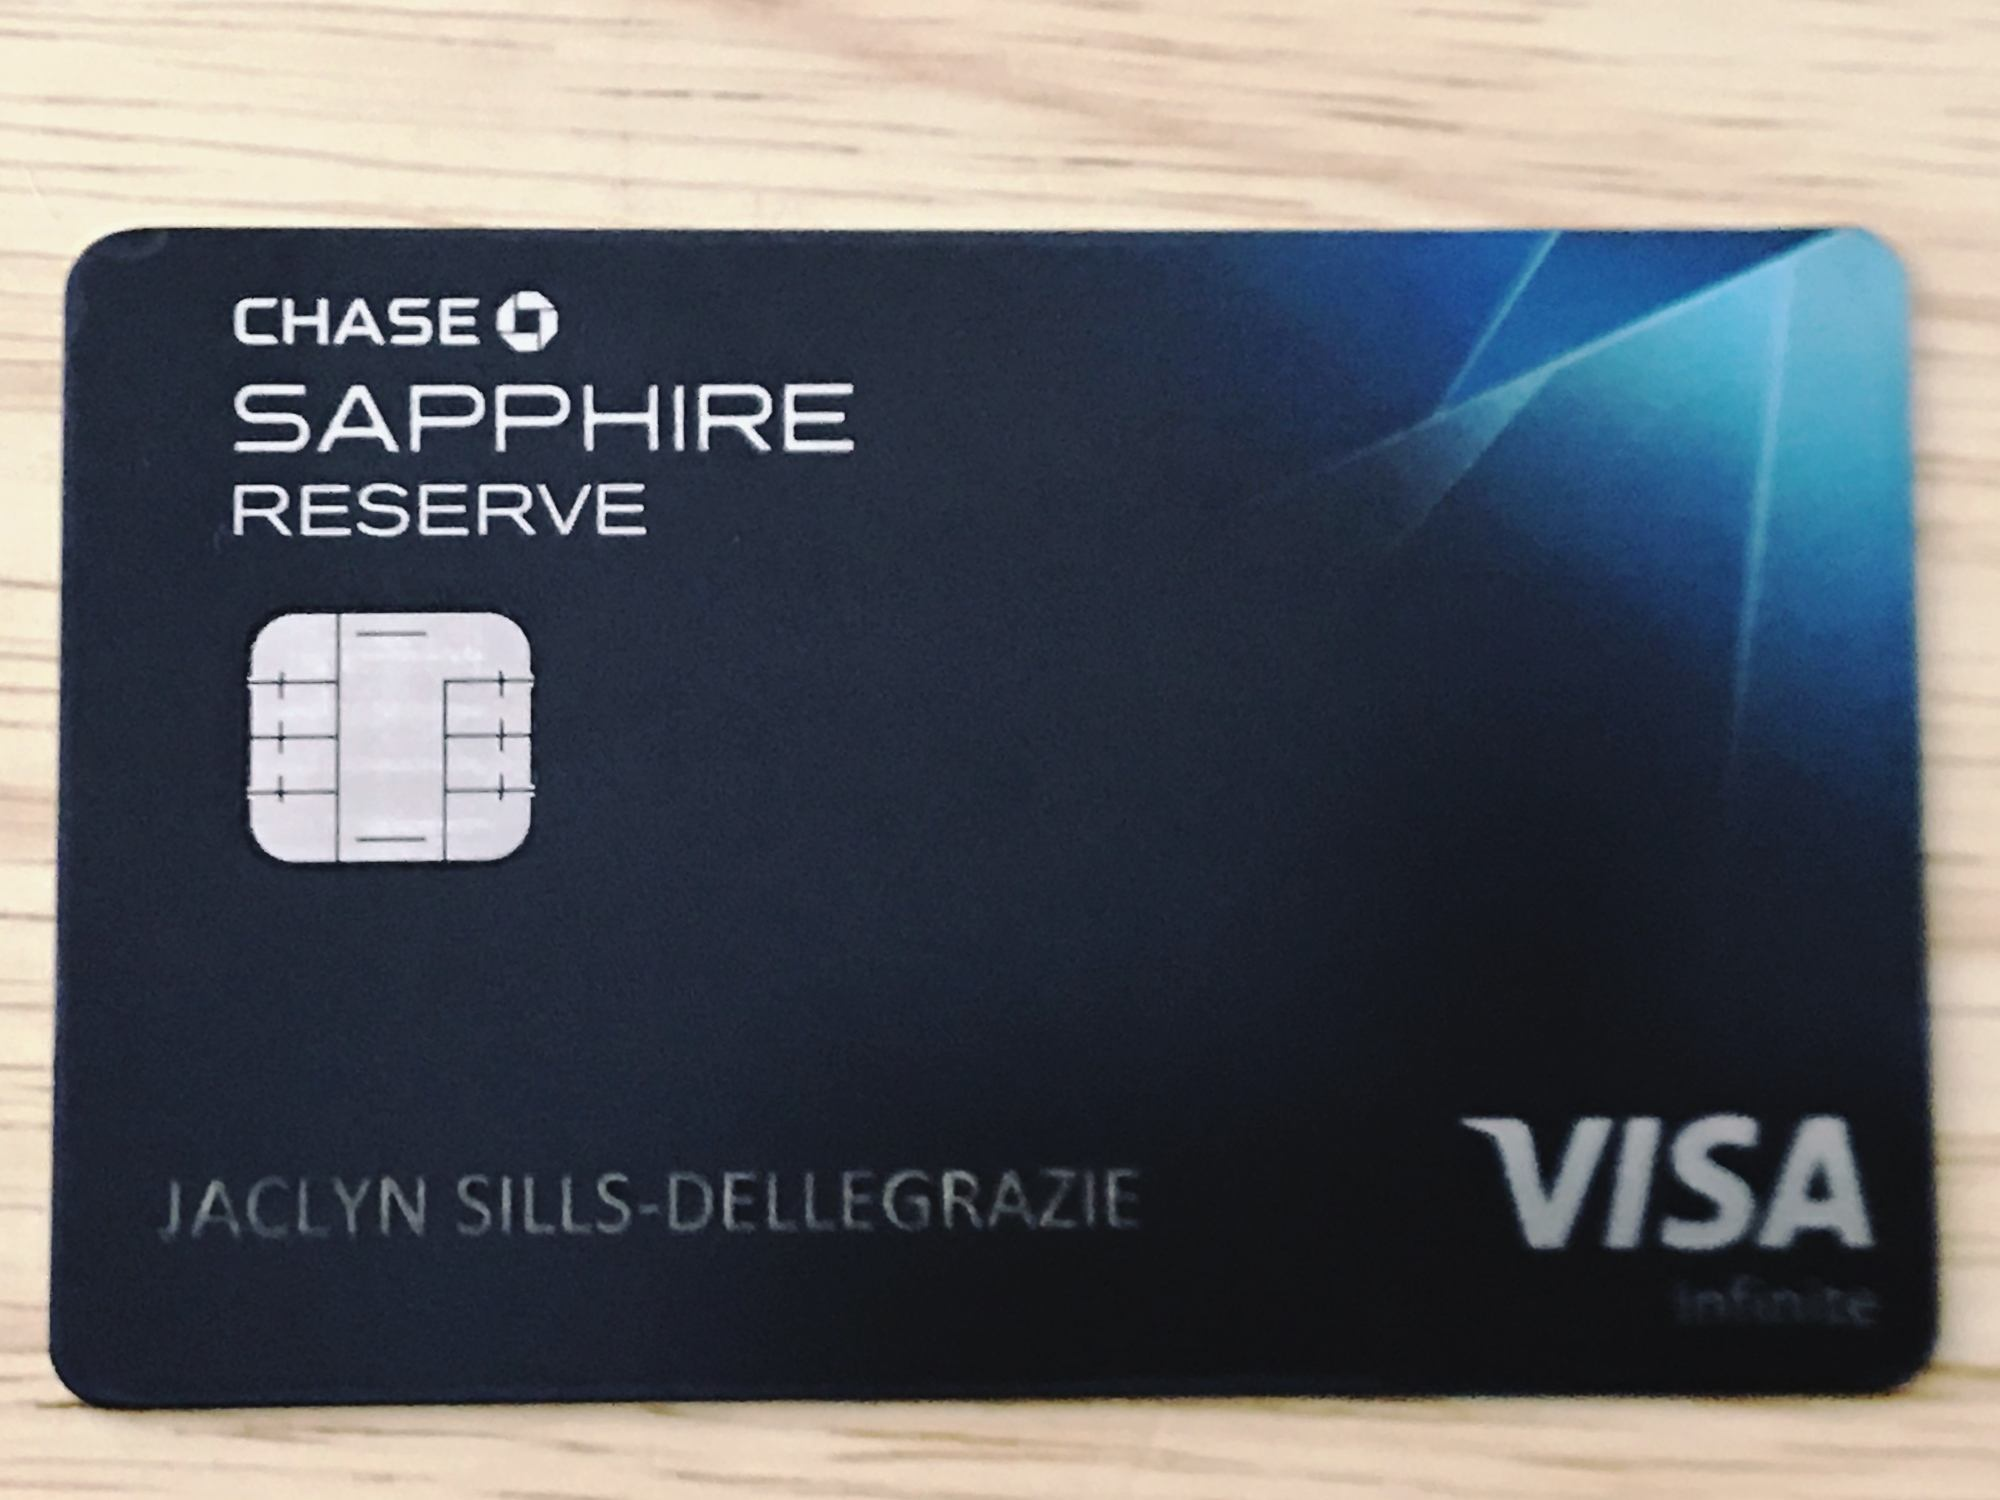 Comparing Annual Fees and Benefits: Chase Sapphire Reserve